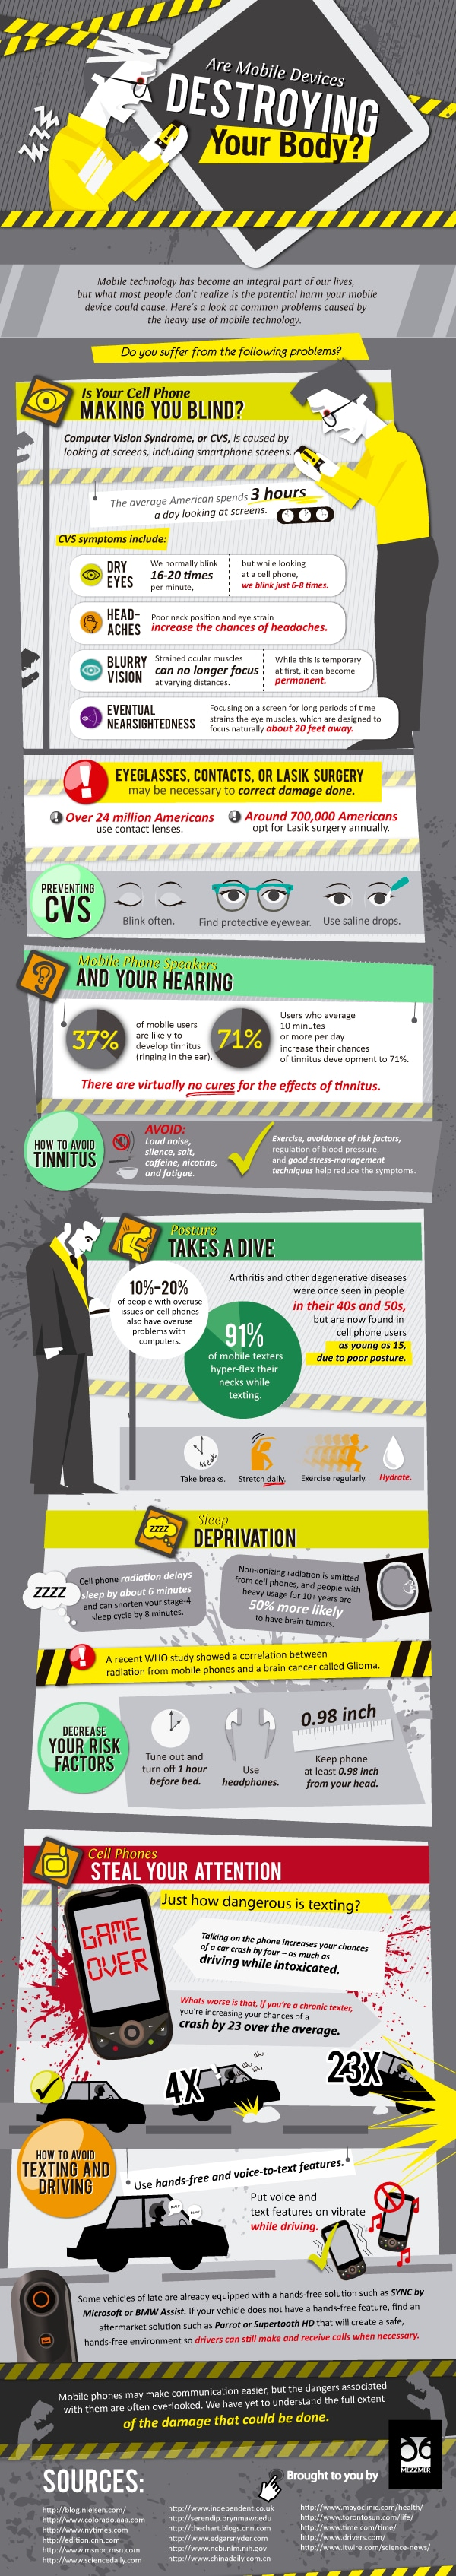 How Mobile Devices Are Destroying Your Body [Infographic]